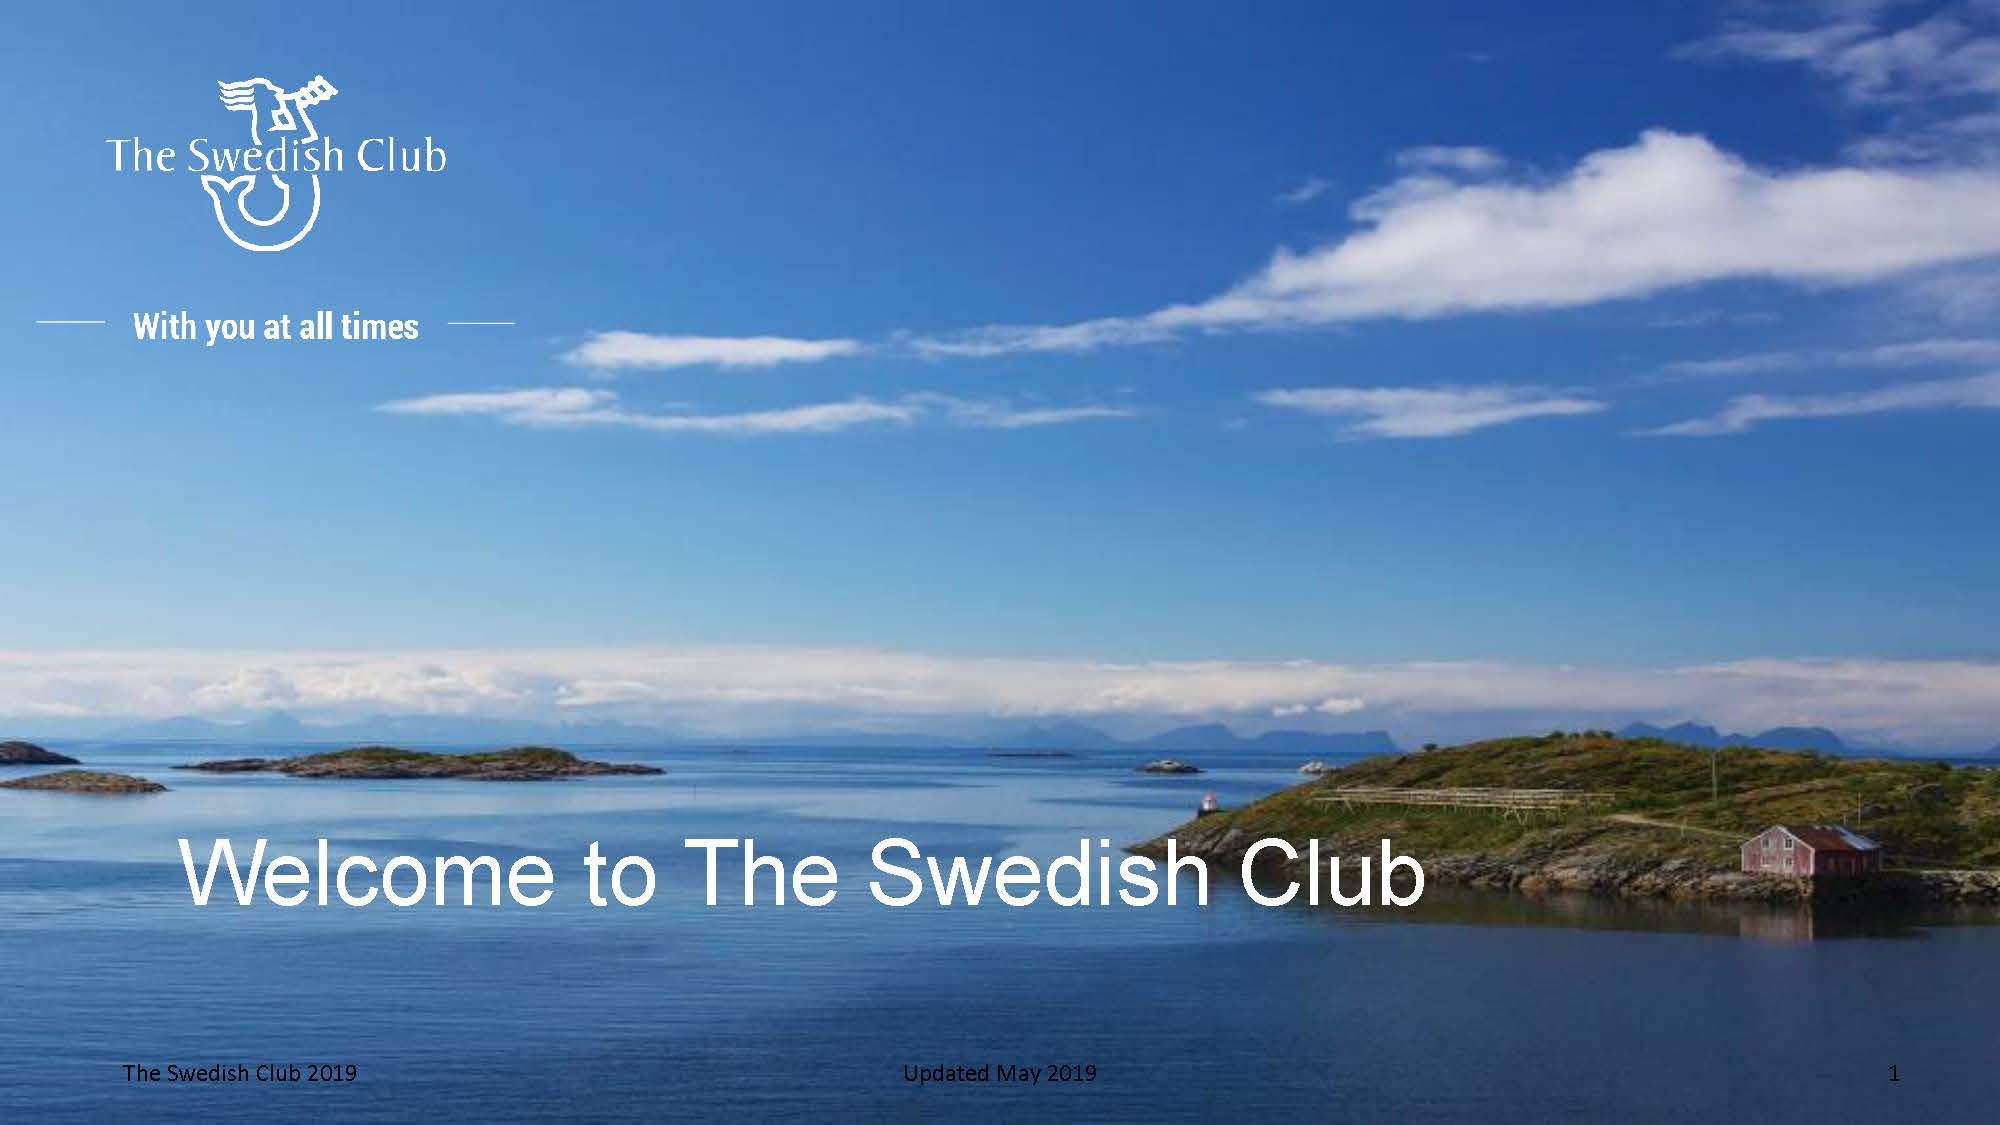 The Swedish Club facts and figures